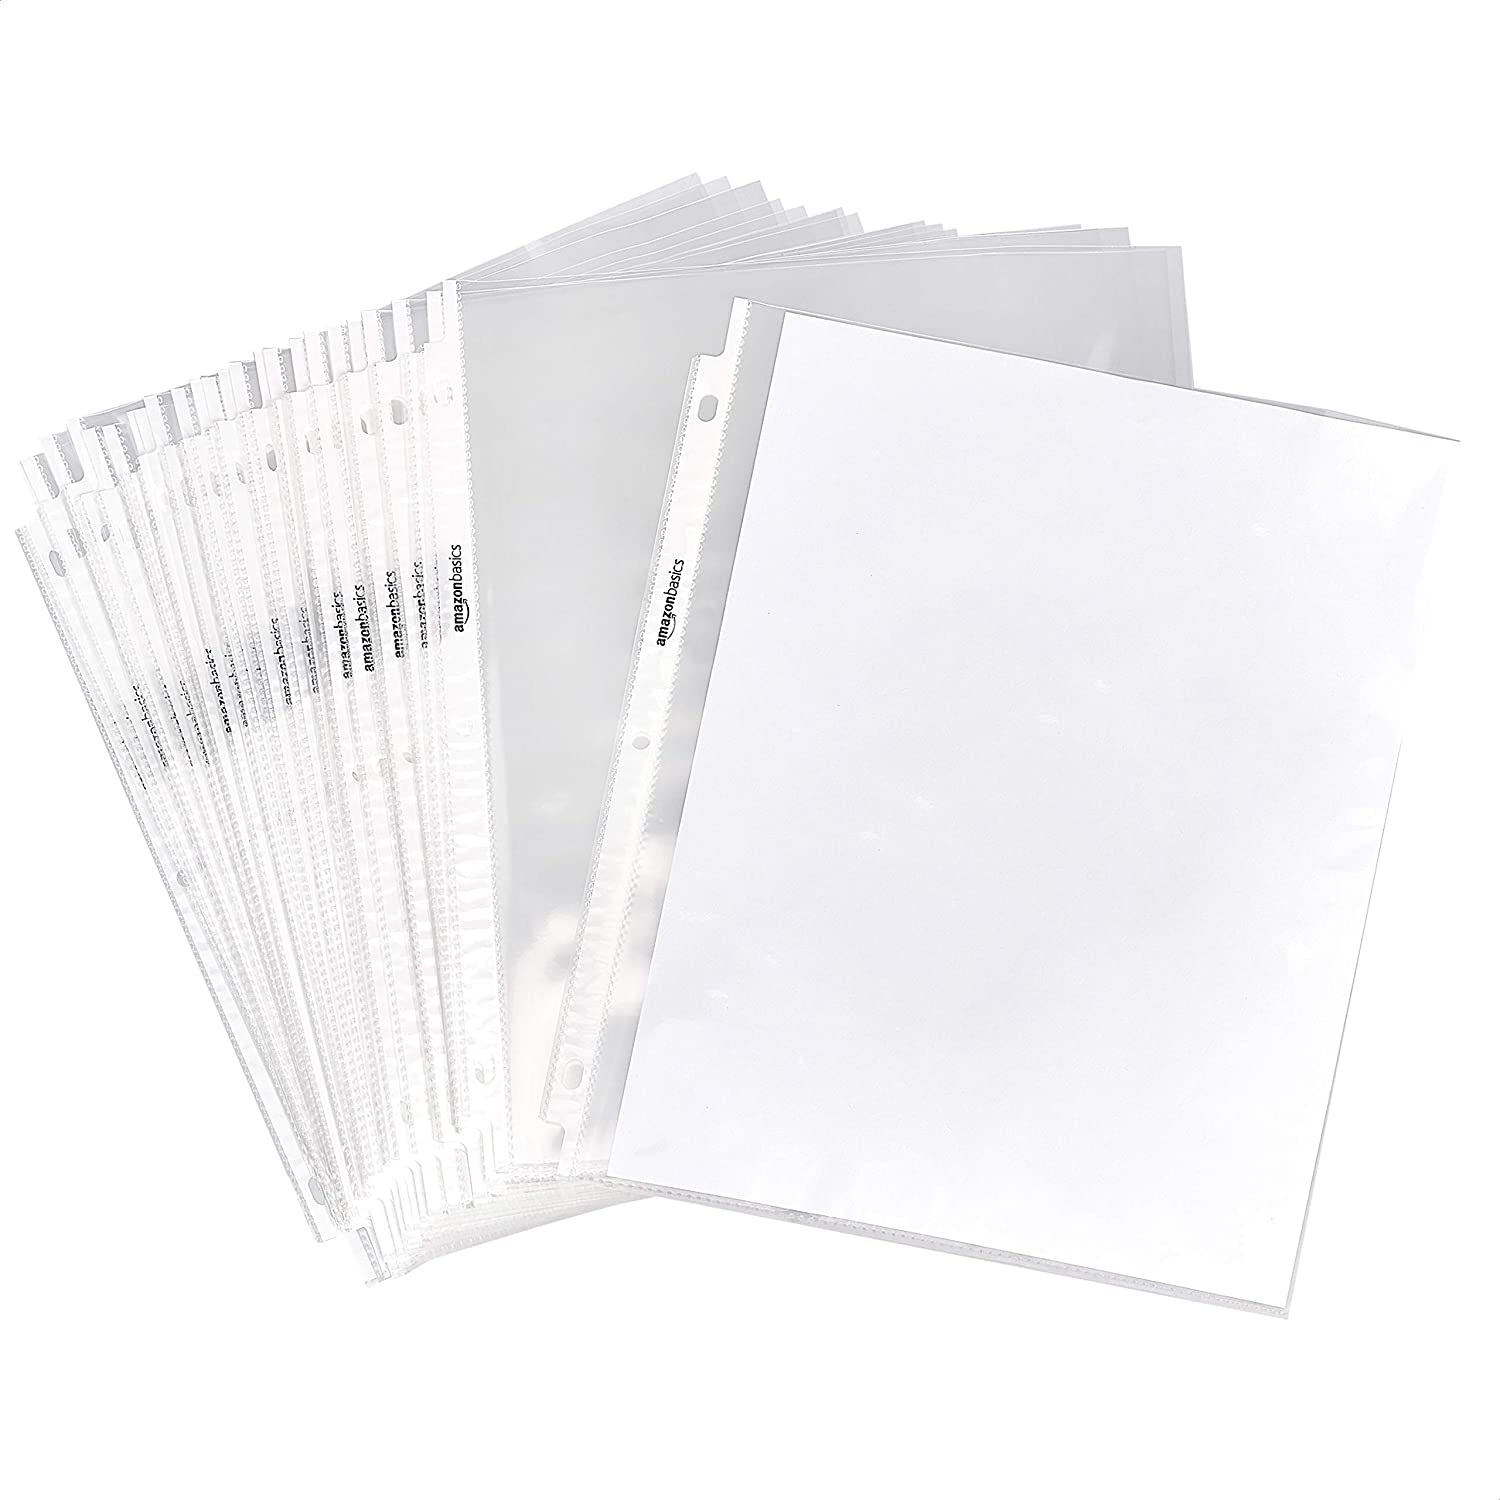 "AmazonBasics Clear Sheet Protector for 3 Ring Binder, 8.5"" x 11"" - 500-Pack"